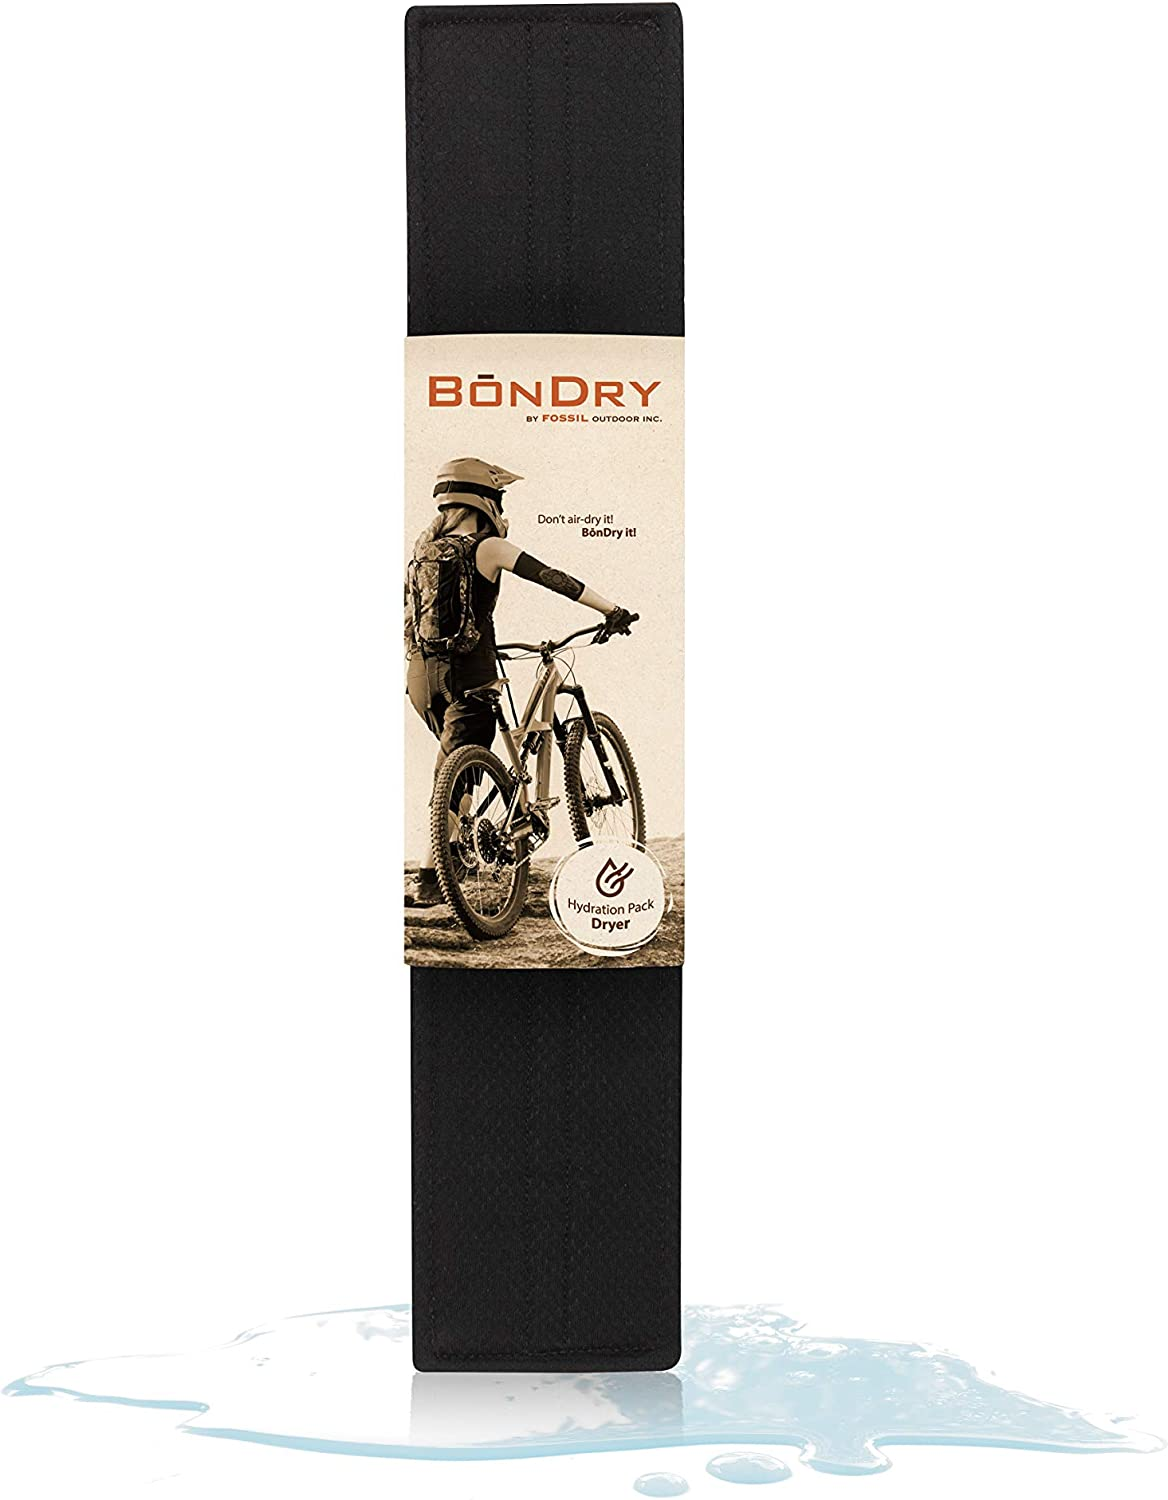 BōnDry - Hydration Pack Bladder Dryer